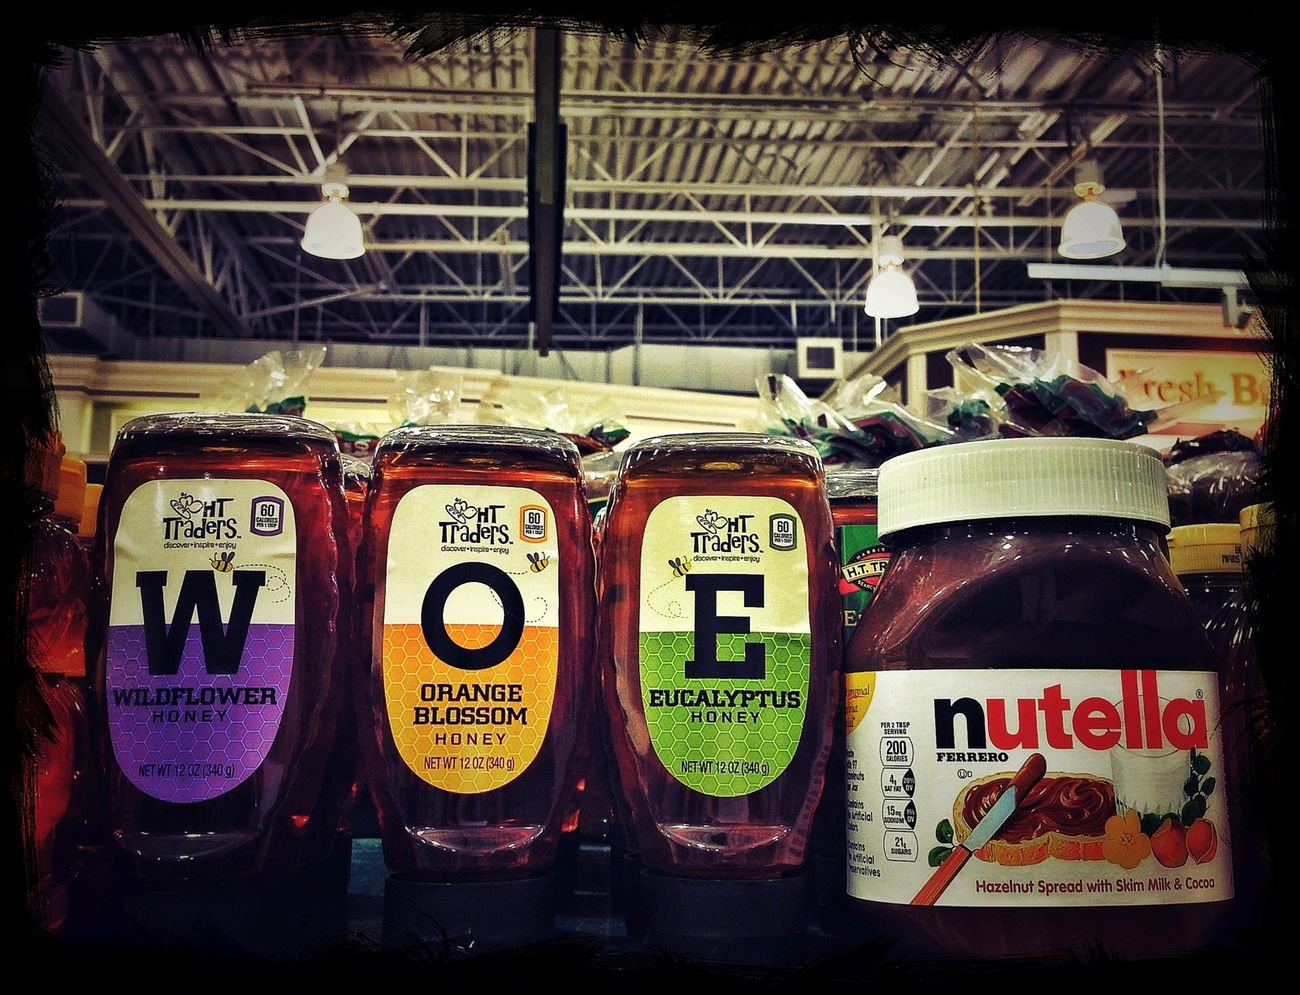 Alphabetography - Woe to the dieter who walks down the Nutella aisle. Under Pressure Diet Yummy